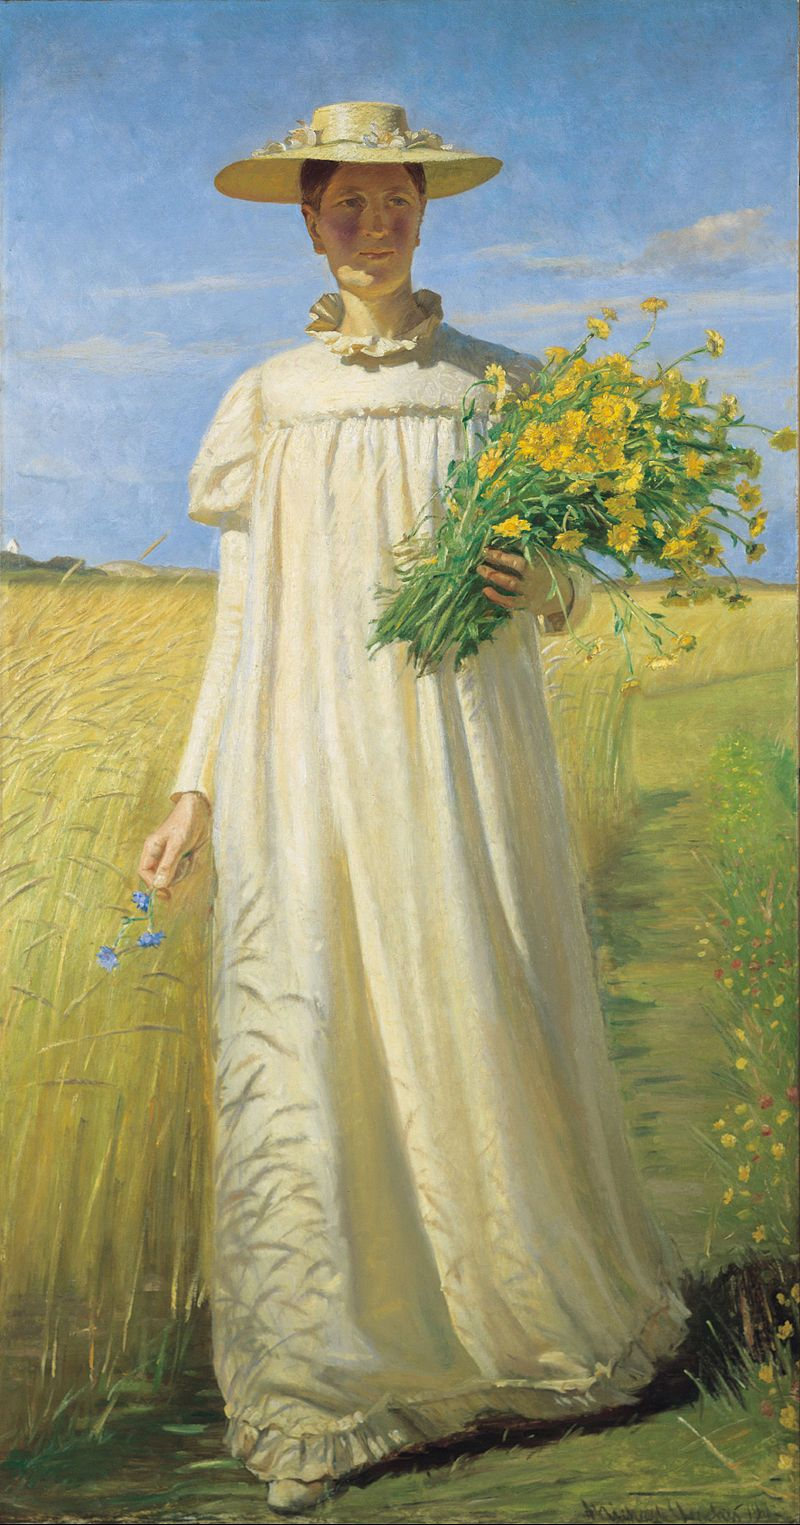 """Anna Ancher Returning from the Field by Michael Ancher (1849-1927), Danish Impressionist painter - Influenced by his traditional training at the Royal Danish Academy of Fine Arts which imposed strict rules for composition, he found it difficult to adjust to Scandinavian painting's modern breakthrough, the """"Skagen School"""". But he combined the pictorial composition of his youth with the teachings of naturalism and created what has been called modern monumental figurative art (wiki)"""